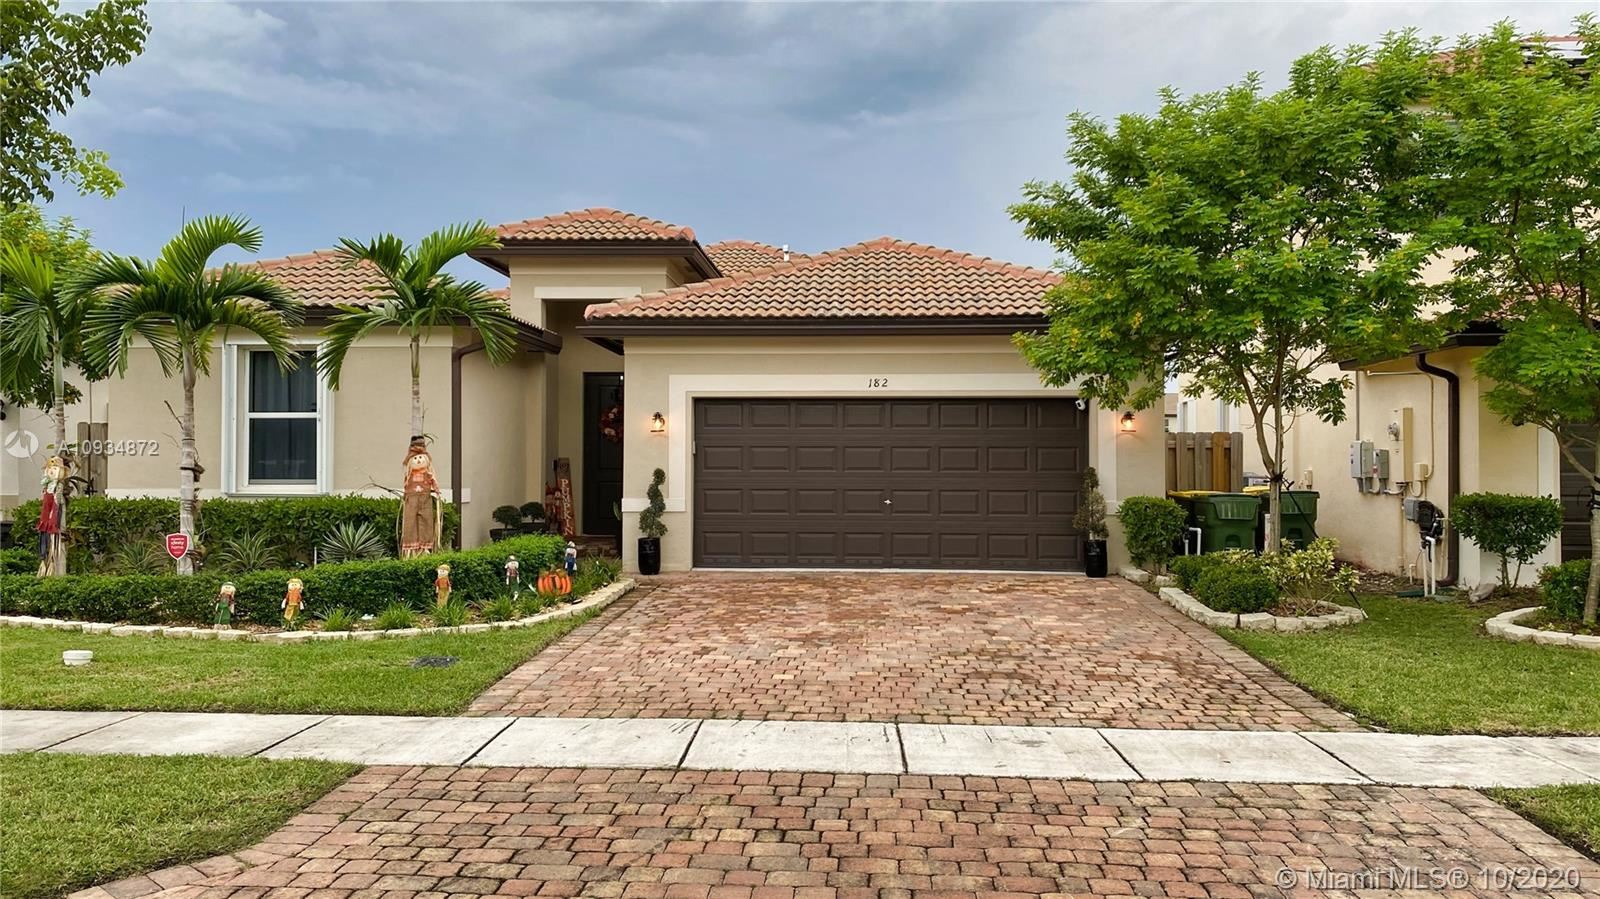 182 SE 22nd Ave, Homestead, FL 33033 - #: A10934872